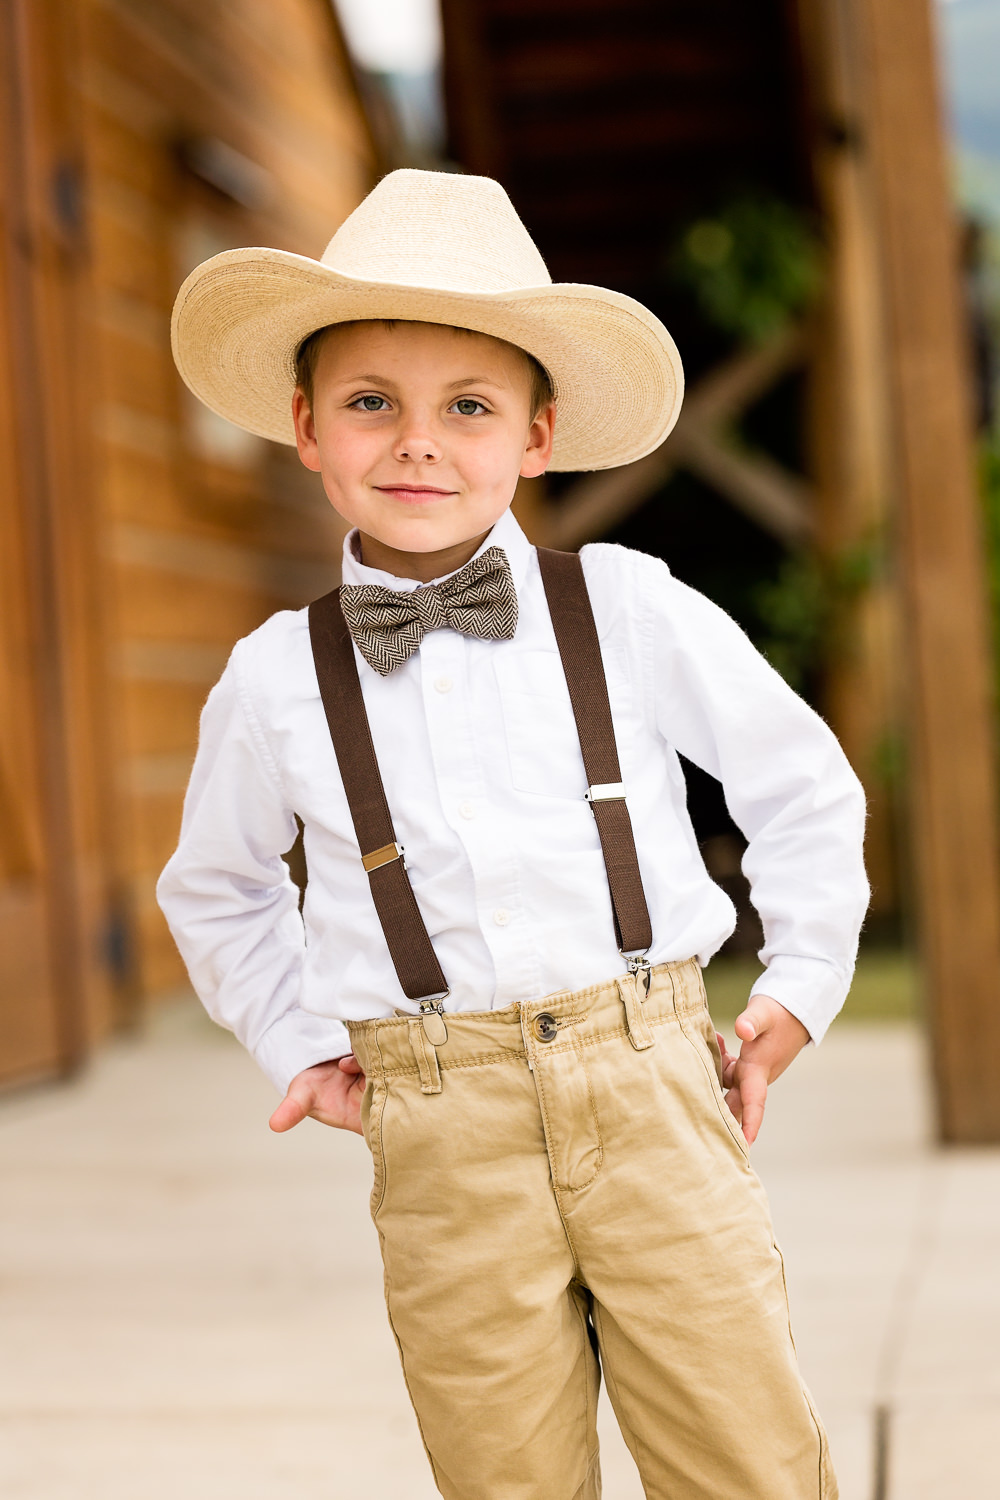 bozeman-montana-wedding-hart-ranch-wedding-cowboy-ring-bearer.jpg